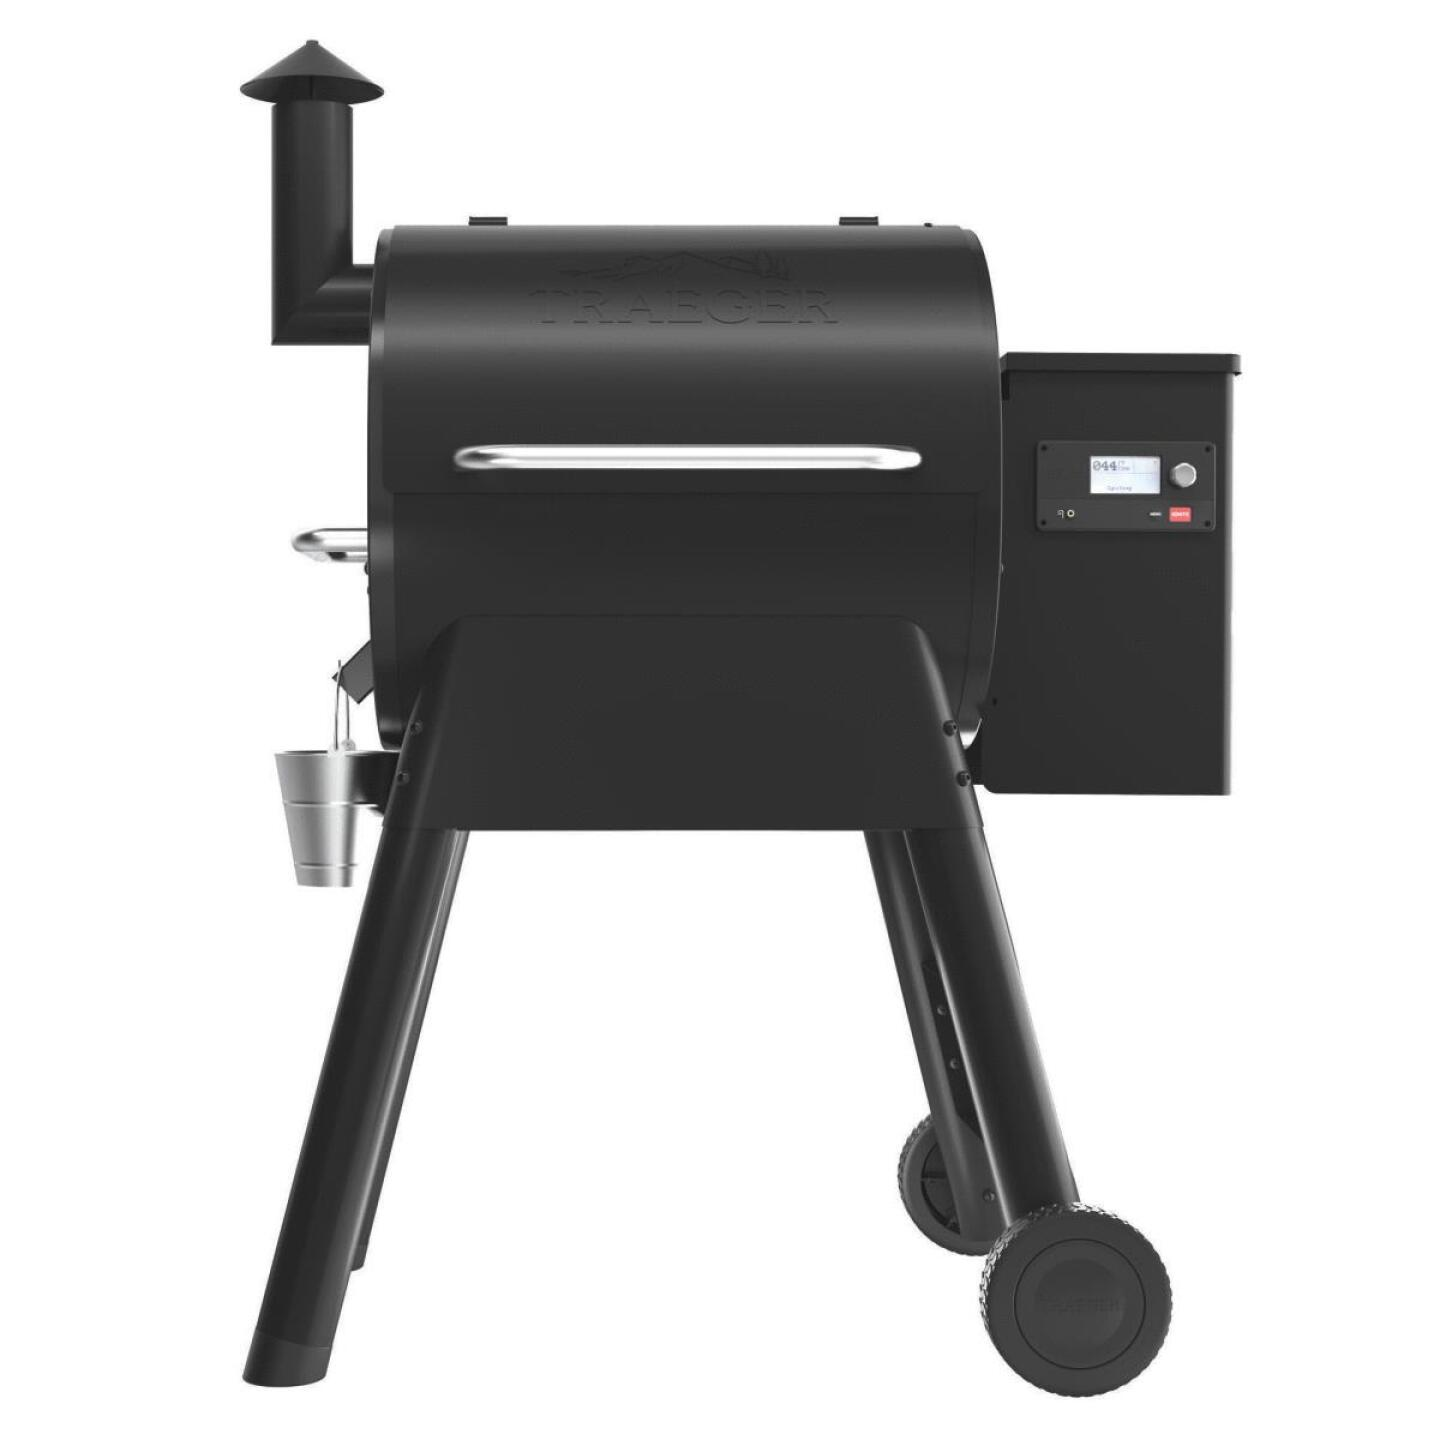 Traeger Pro 575 Black 36,000 BTU 572 Sq. In. Wood Pellet Grill Image 5